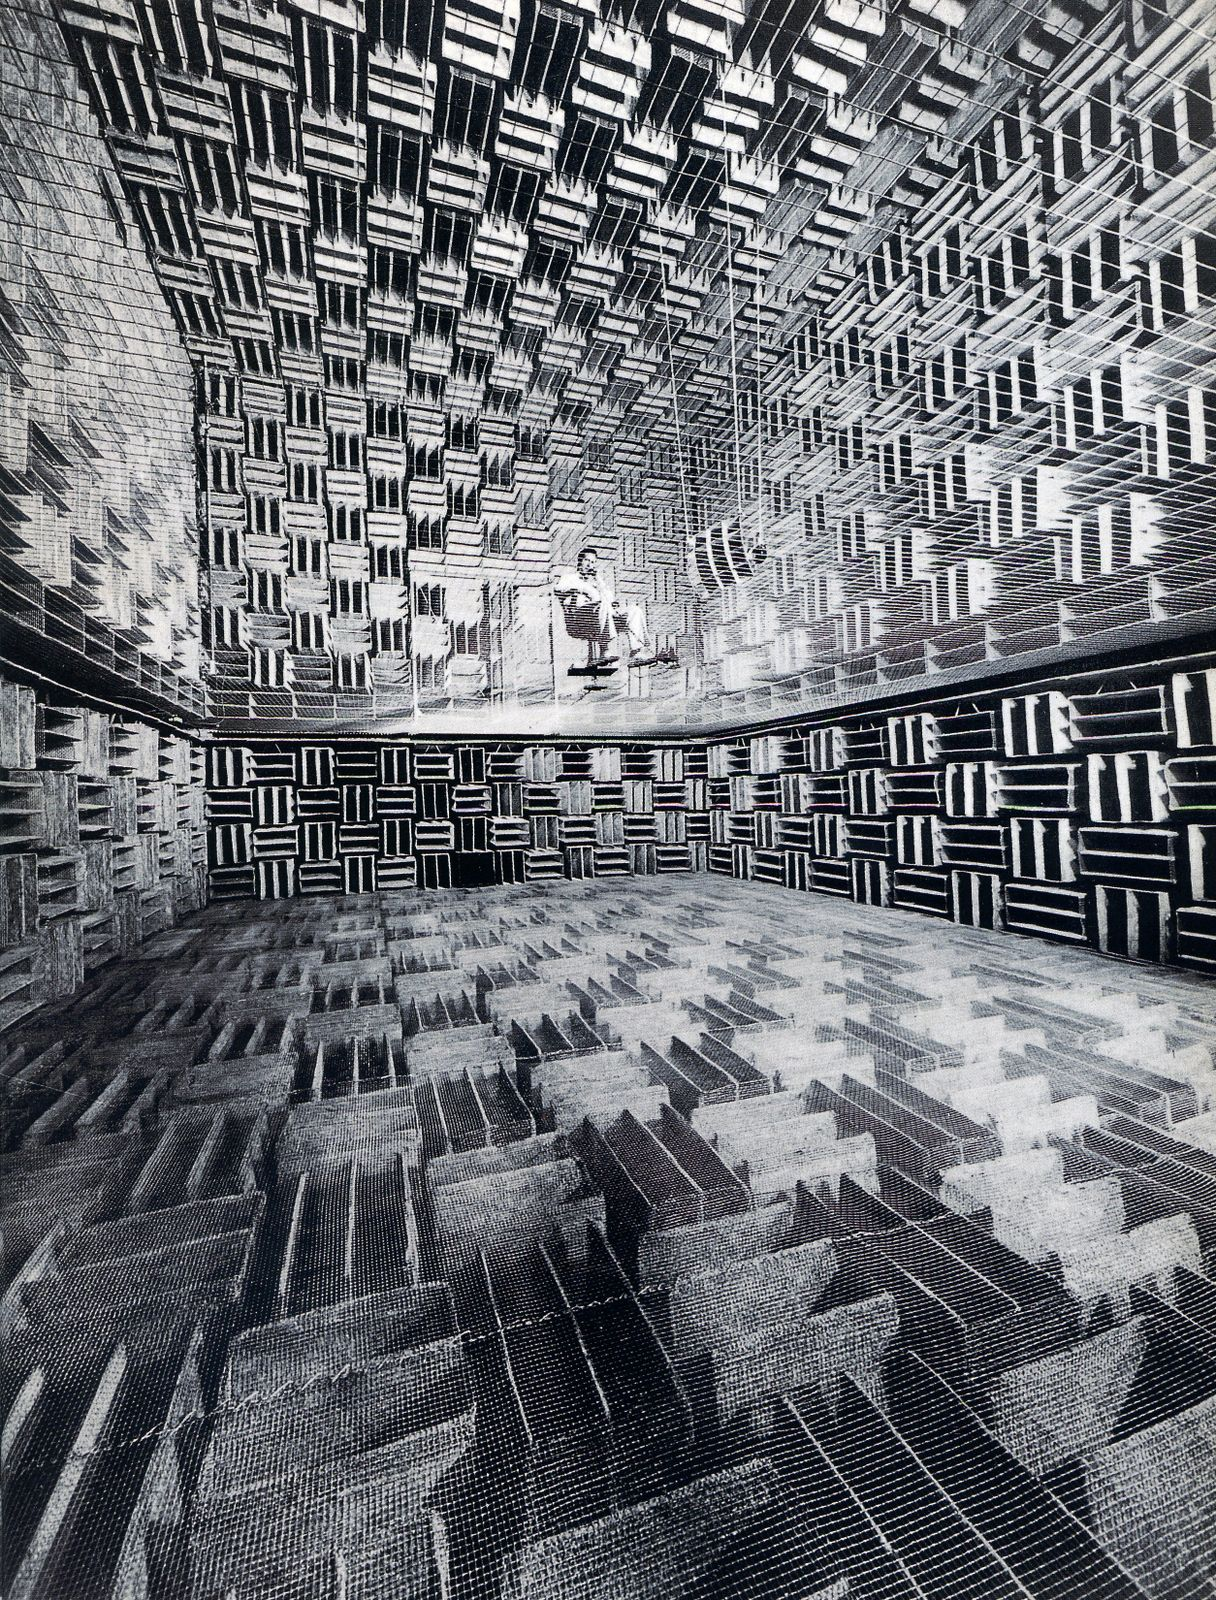 ladiscarica:    Eric Schaal, Bell Laboratories 'Murray Hill' anechoic chamber, 1947[photo E. Shaal/Life/Grazie Neri, Milano]